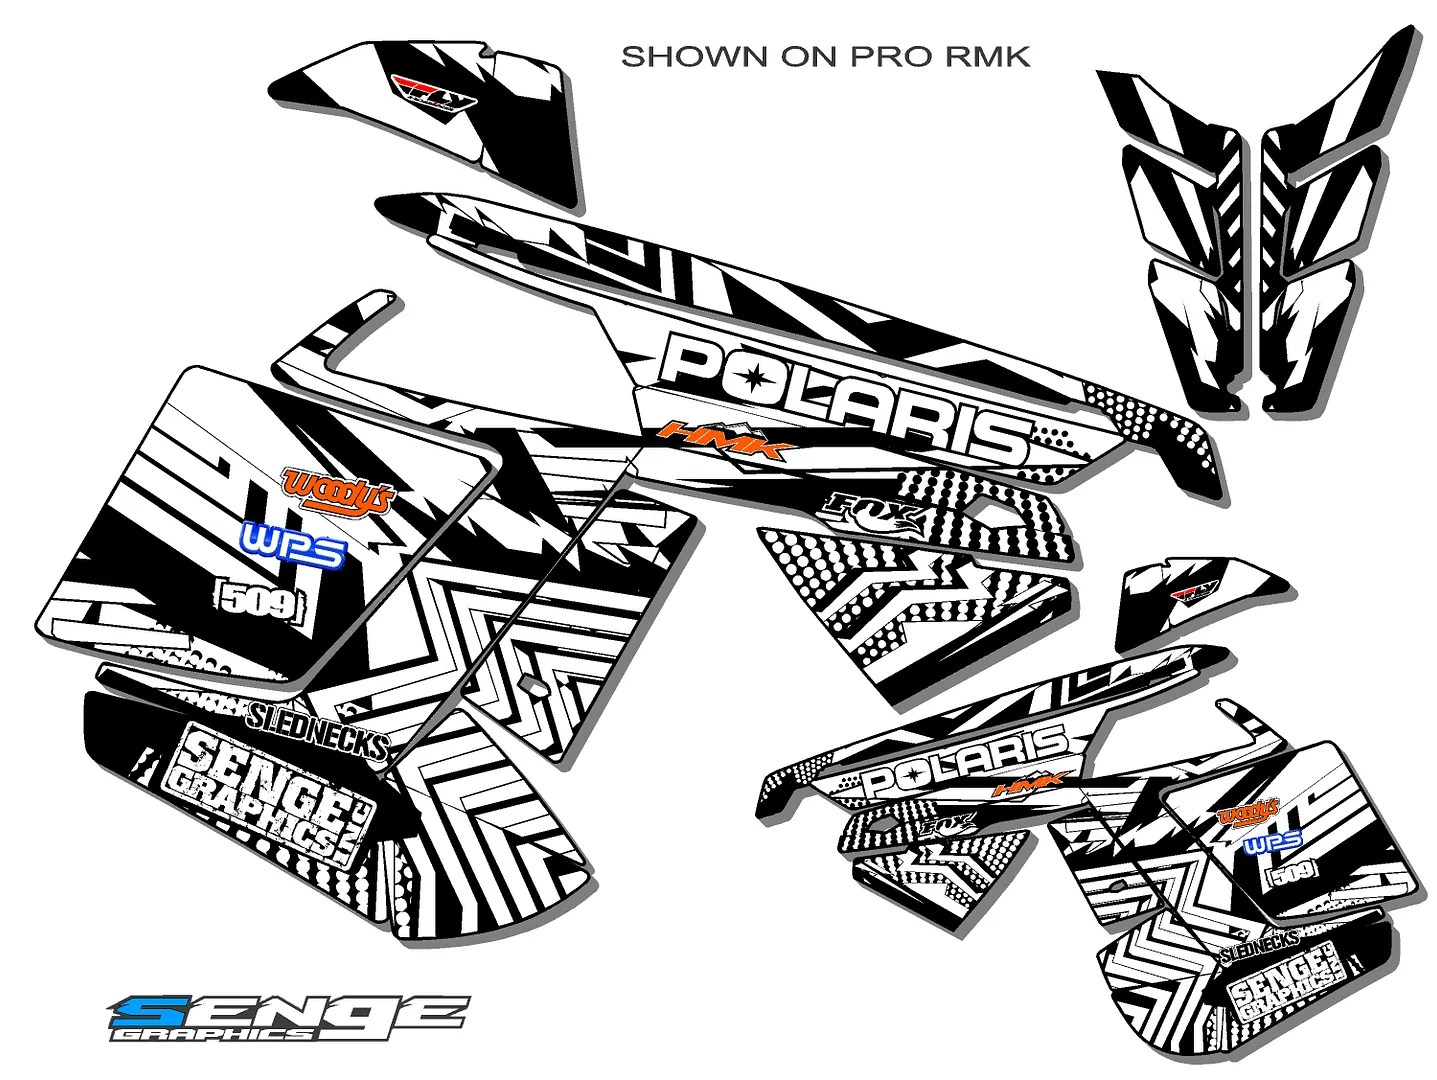 Polaris Pro Rmk Switchback Prormk